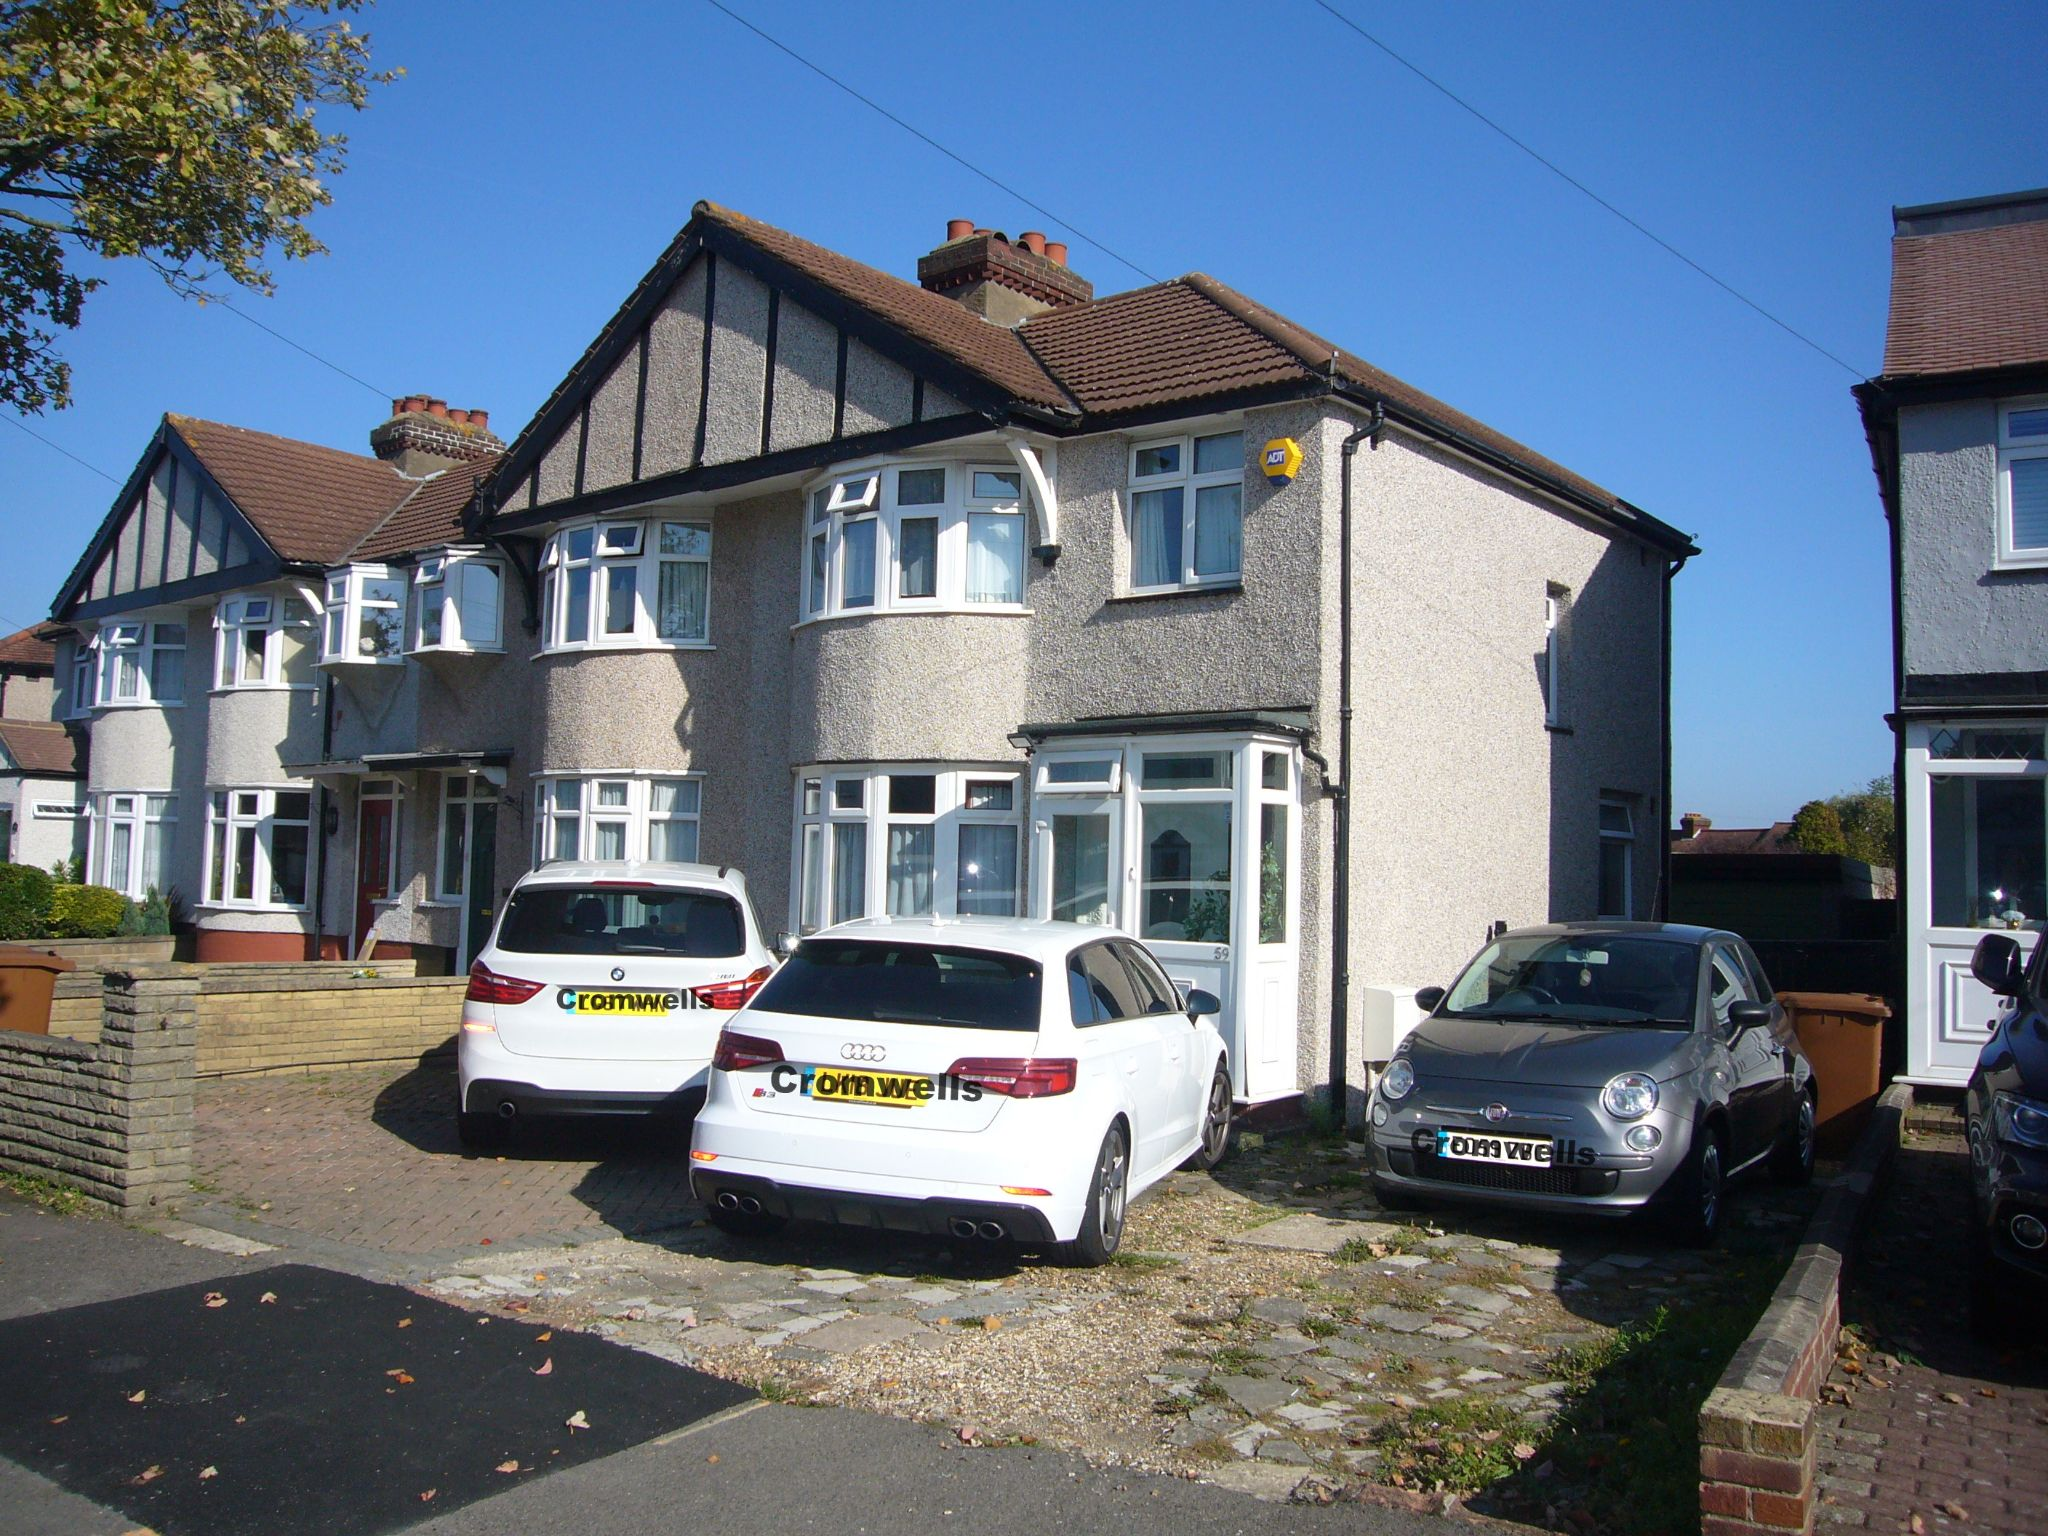 3 bedroom end terraced house Let Agreed in Sutton - Photograph 1.